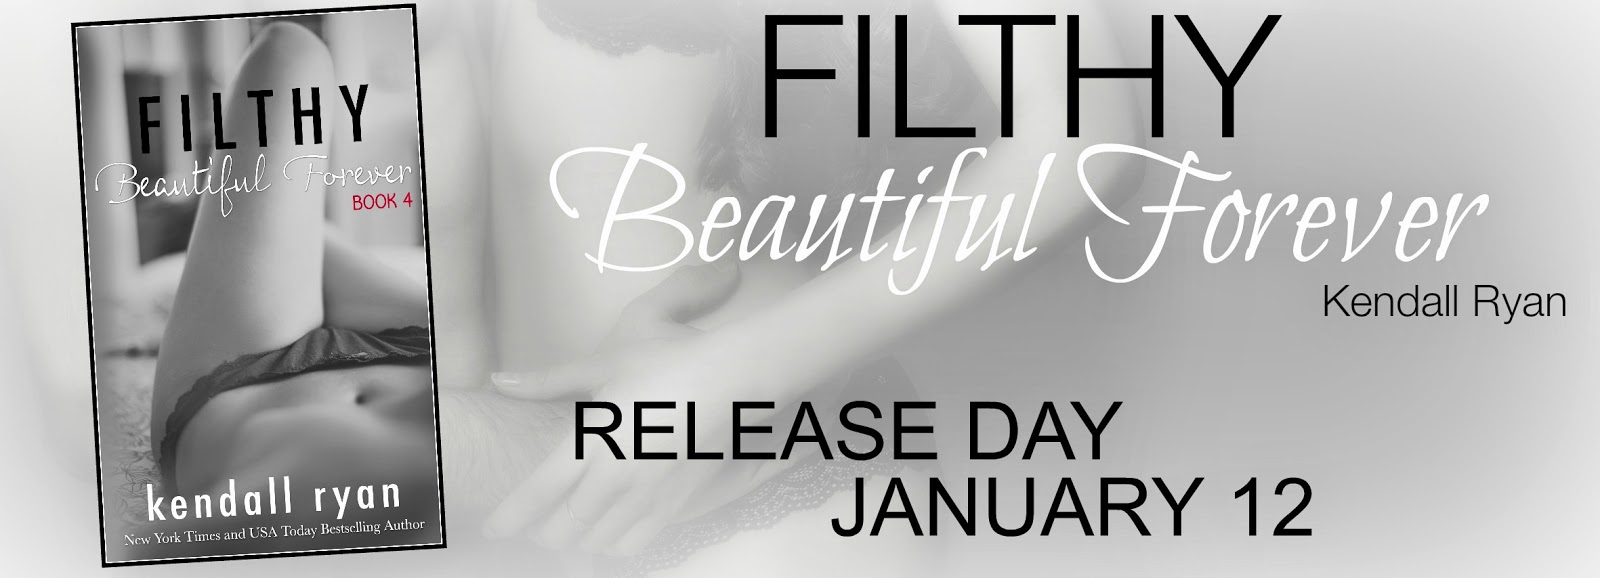 Kendall Ryan Libros Filthy Beautiful Forever By Kendall Ryan Is Live